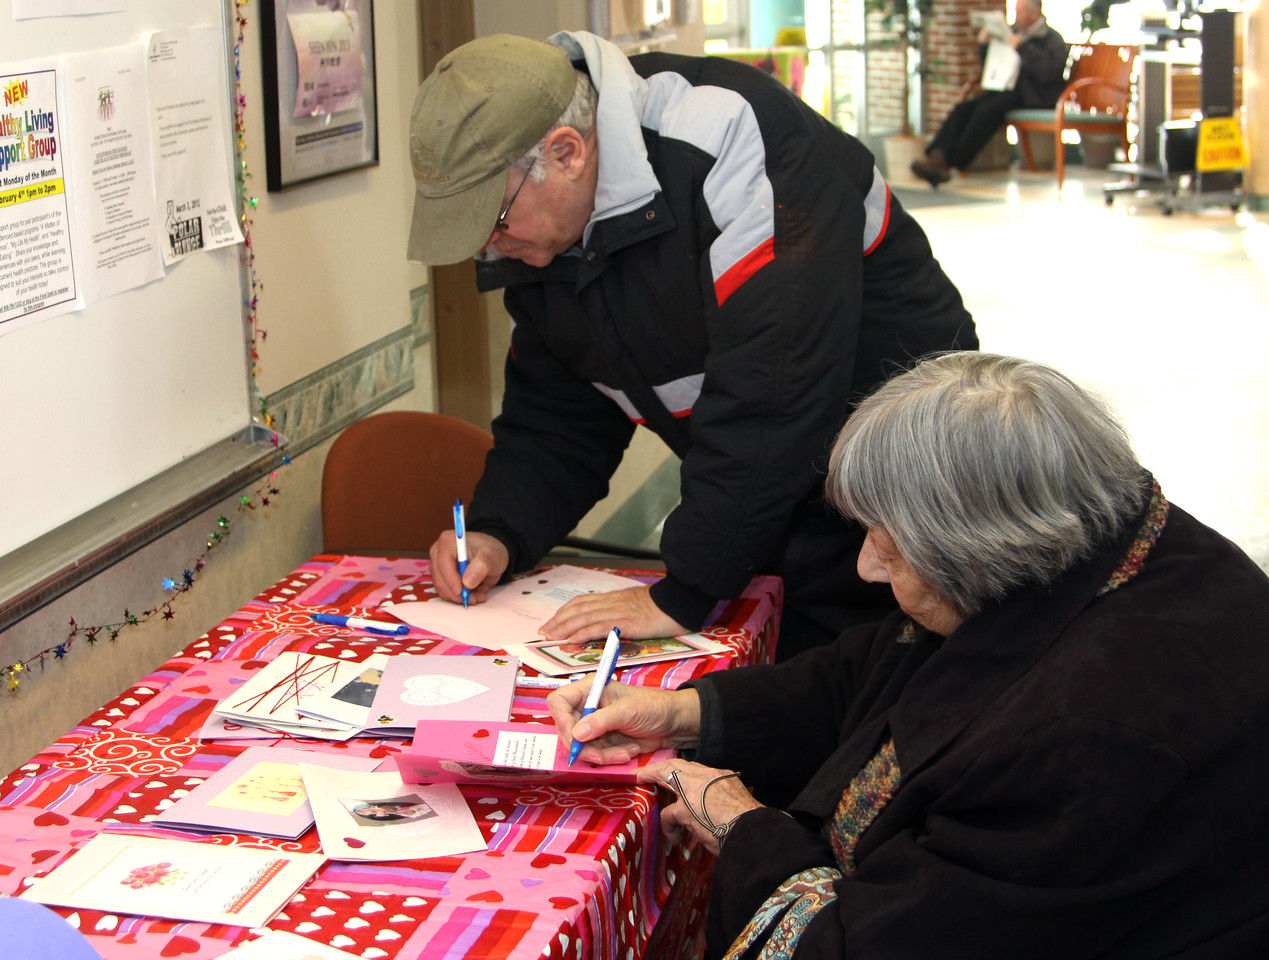 Seniors work on some of the 180 volunteer-created Valentines destined for U.S. Embassies and Marine Embassy Guard Posts during an RSVP event at the Worcester (MA) Senior Center.